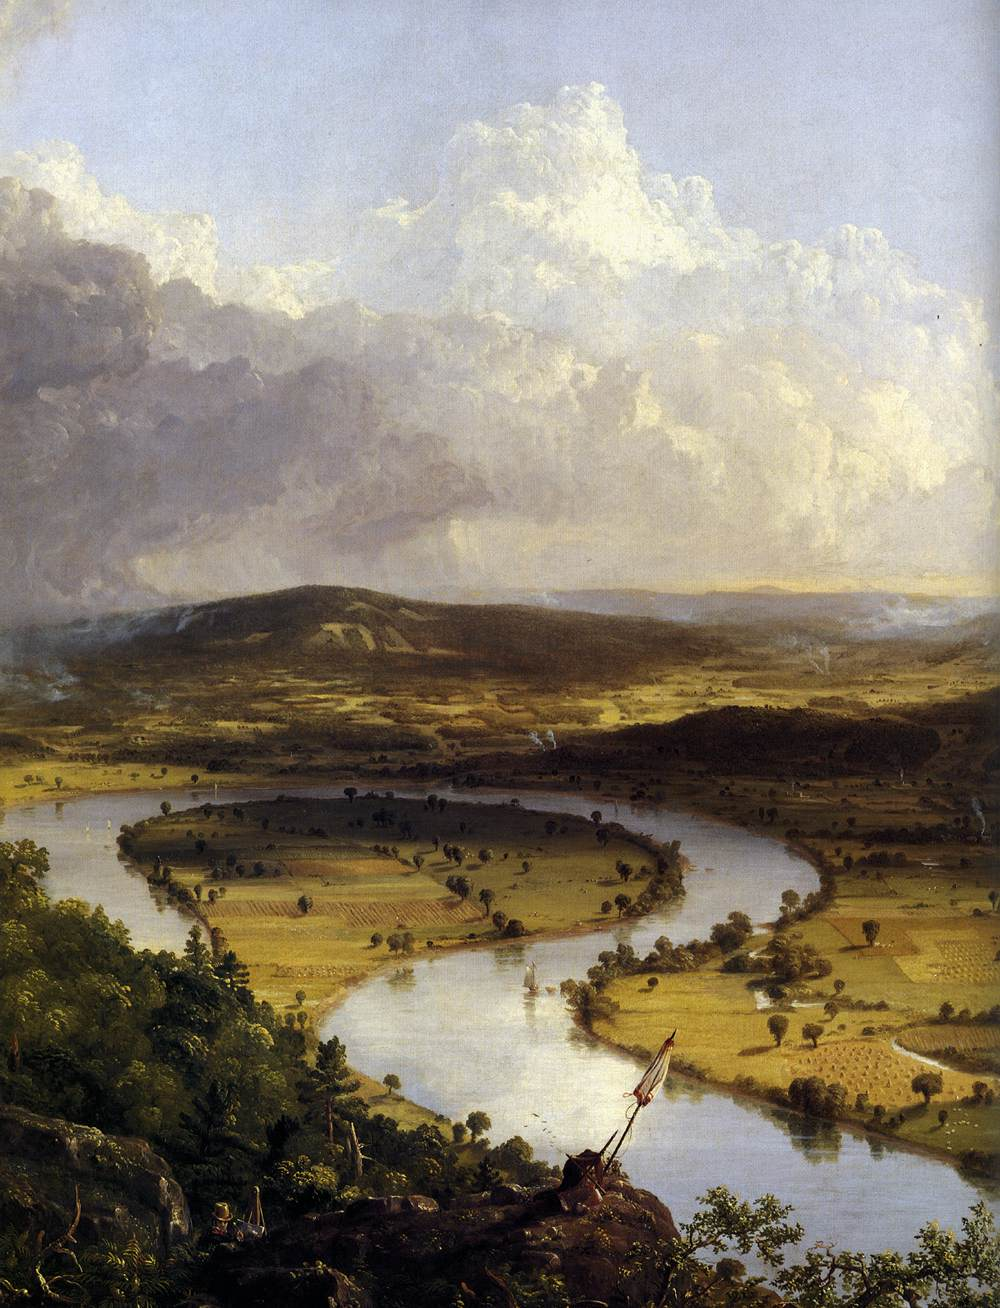 Thomas Cole, The Oxbow